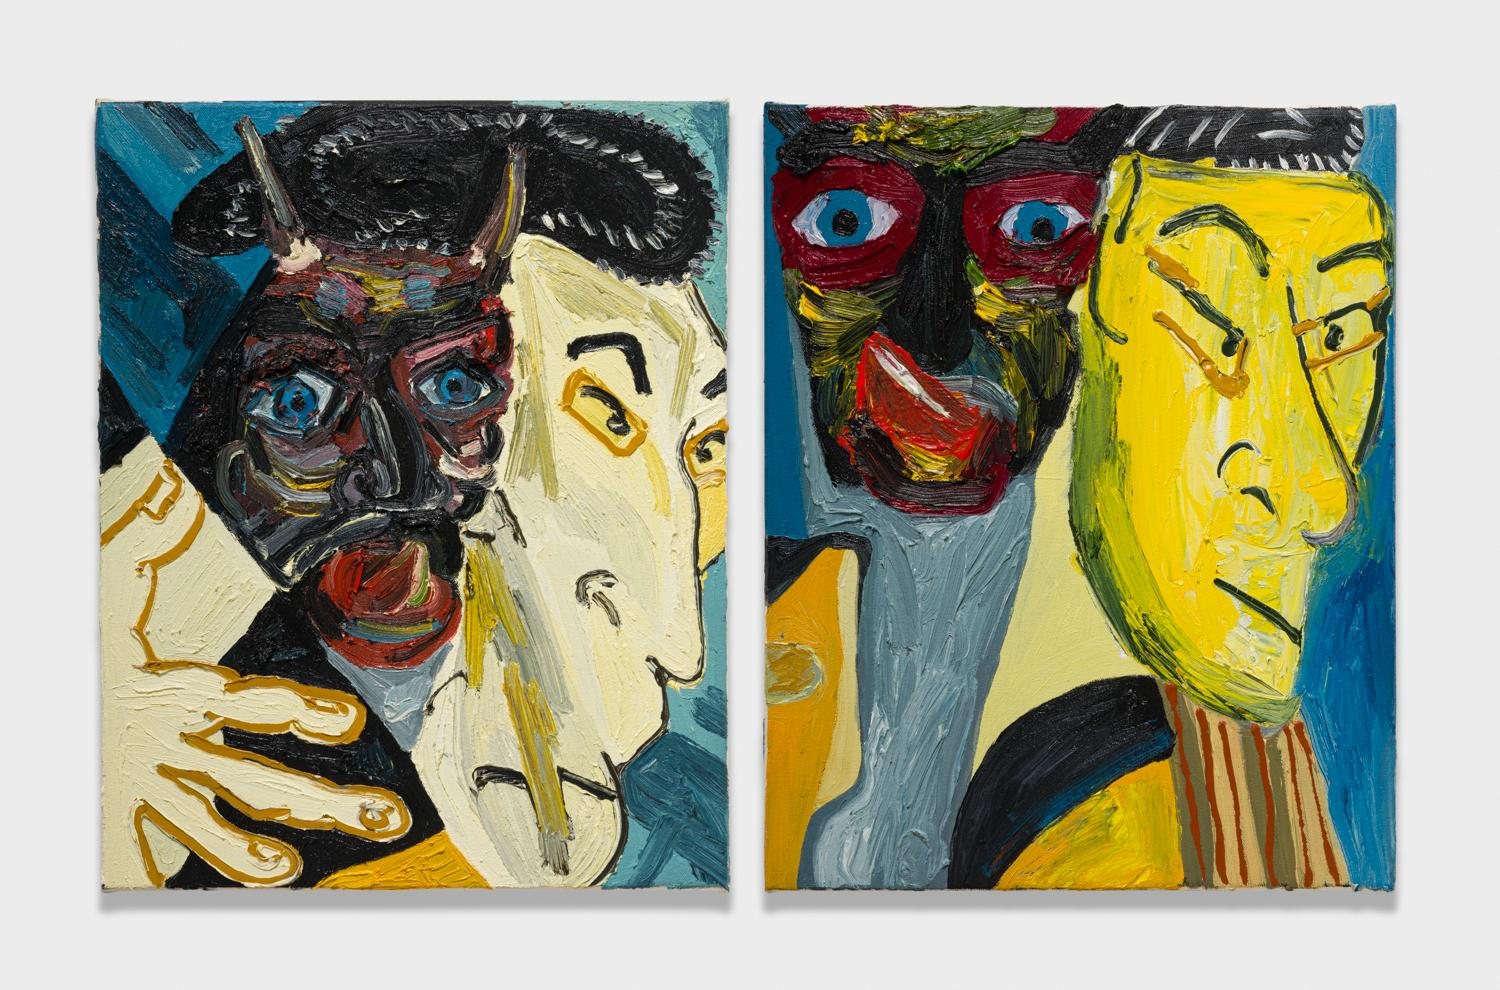 Alex Becerra and Matthew Clifford Green  Wooden Mask and Tapestry  2018 Oil on canvas Two elements, 20h x 16w in. each ABMCG007